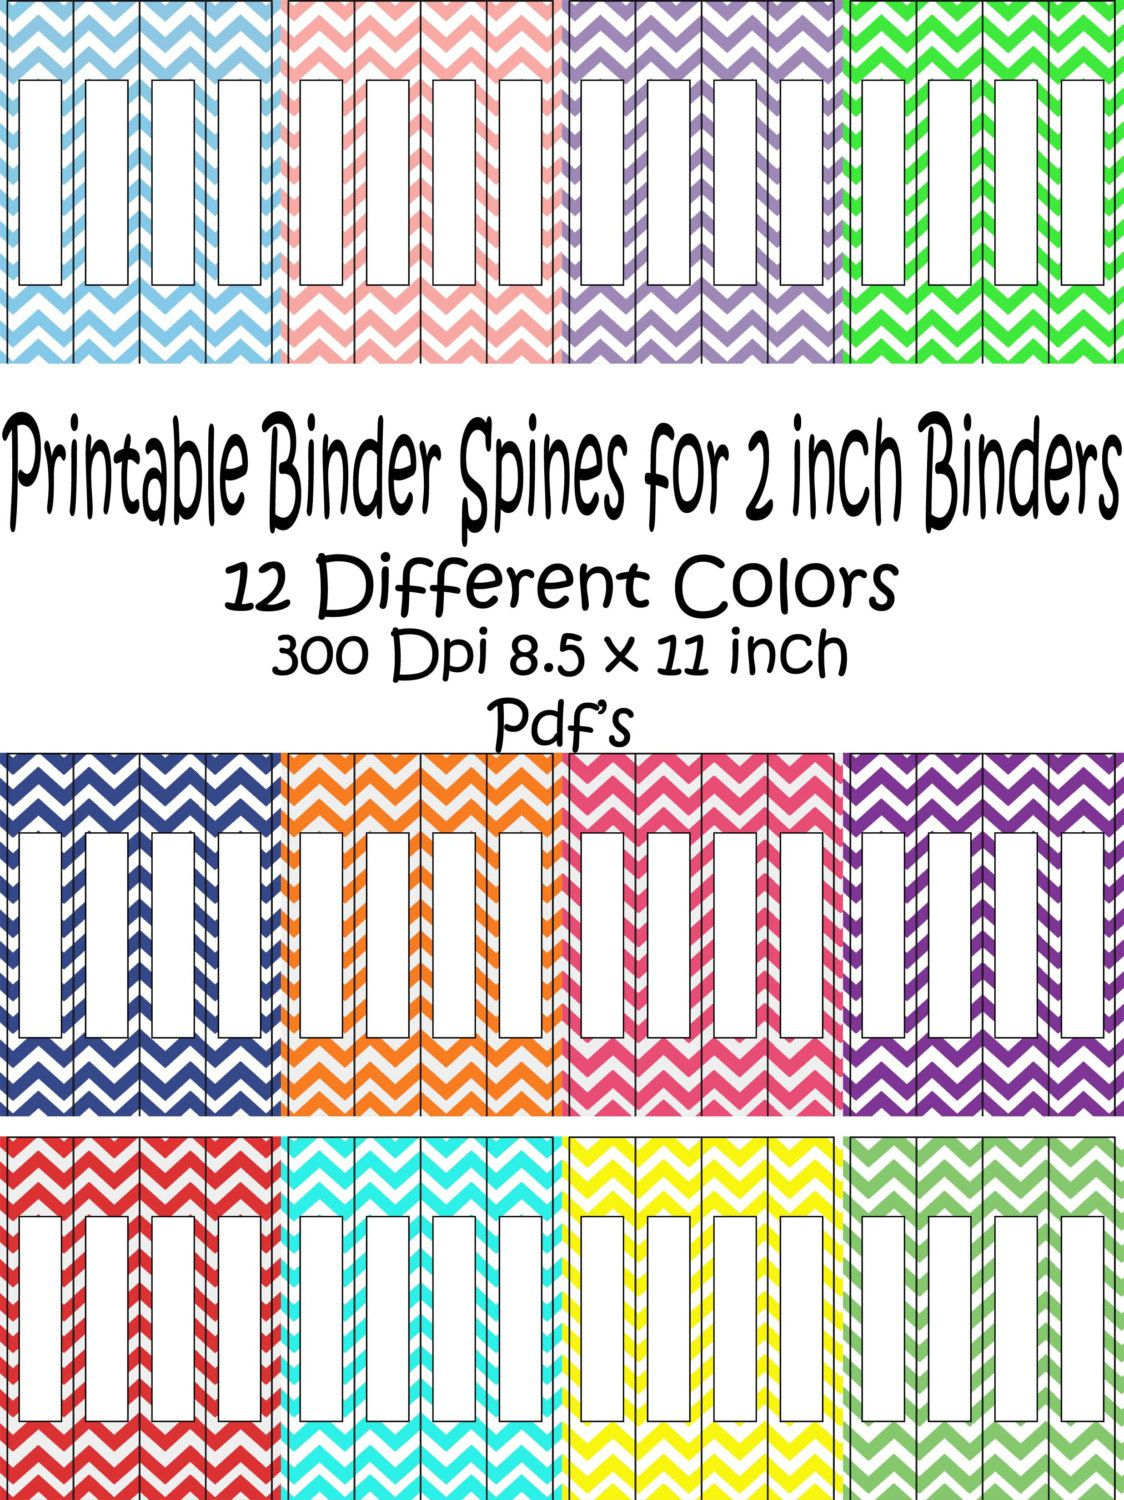 Printable Binder Spine Pack Size 2 Inch-12 Different Colors In - Printable Binder Spine Inserts Free